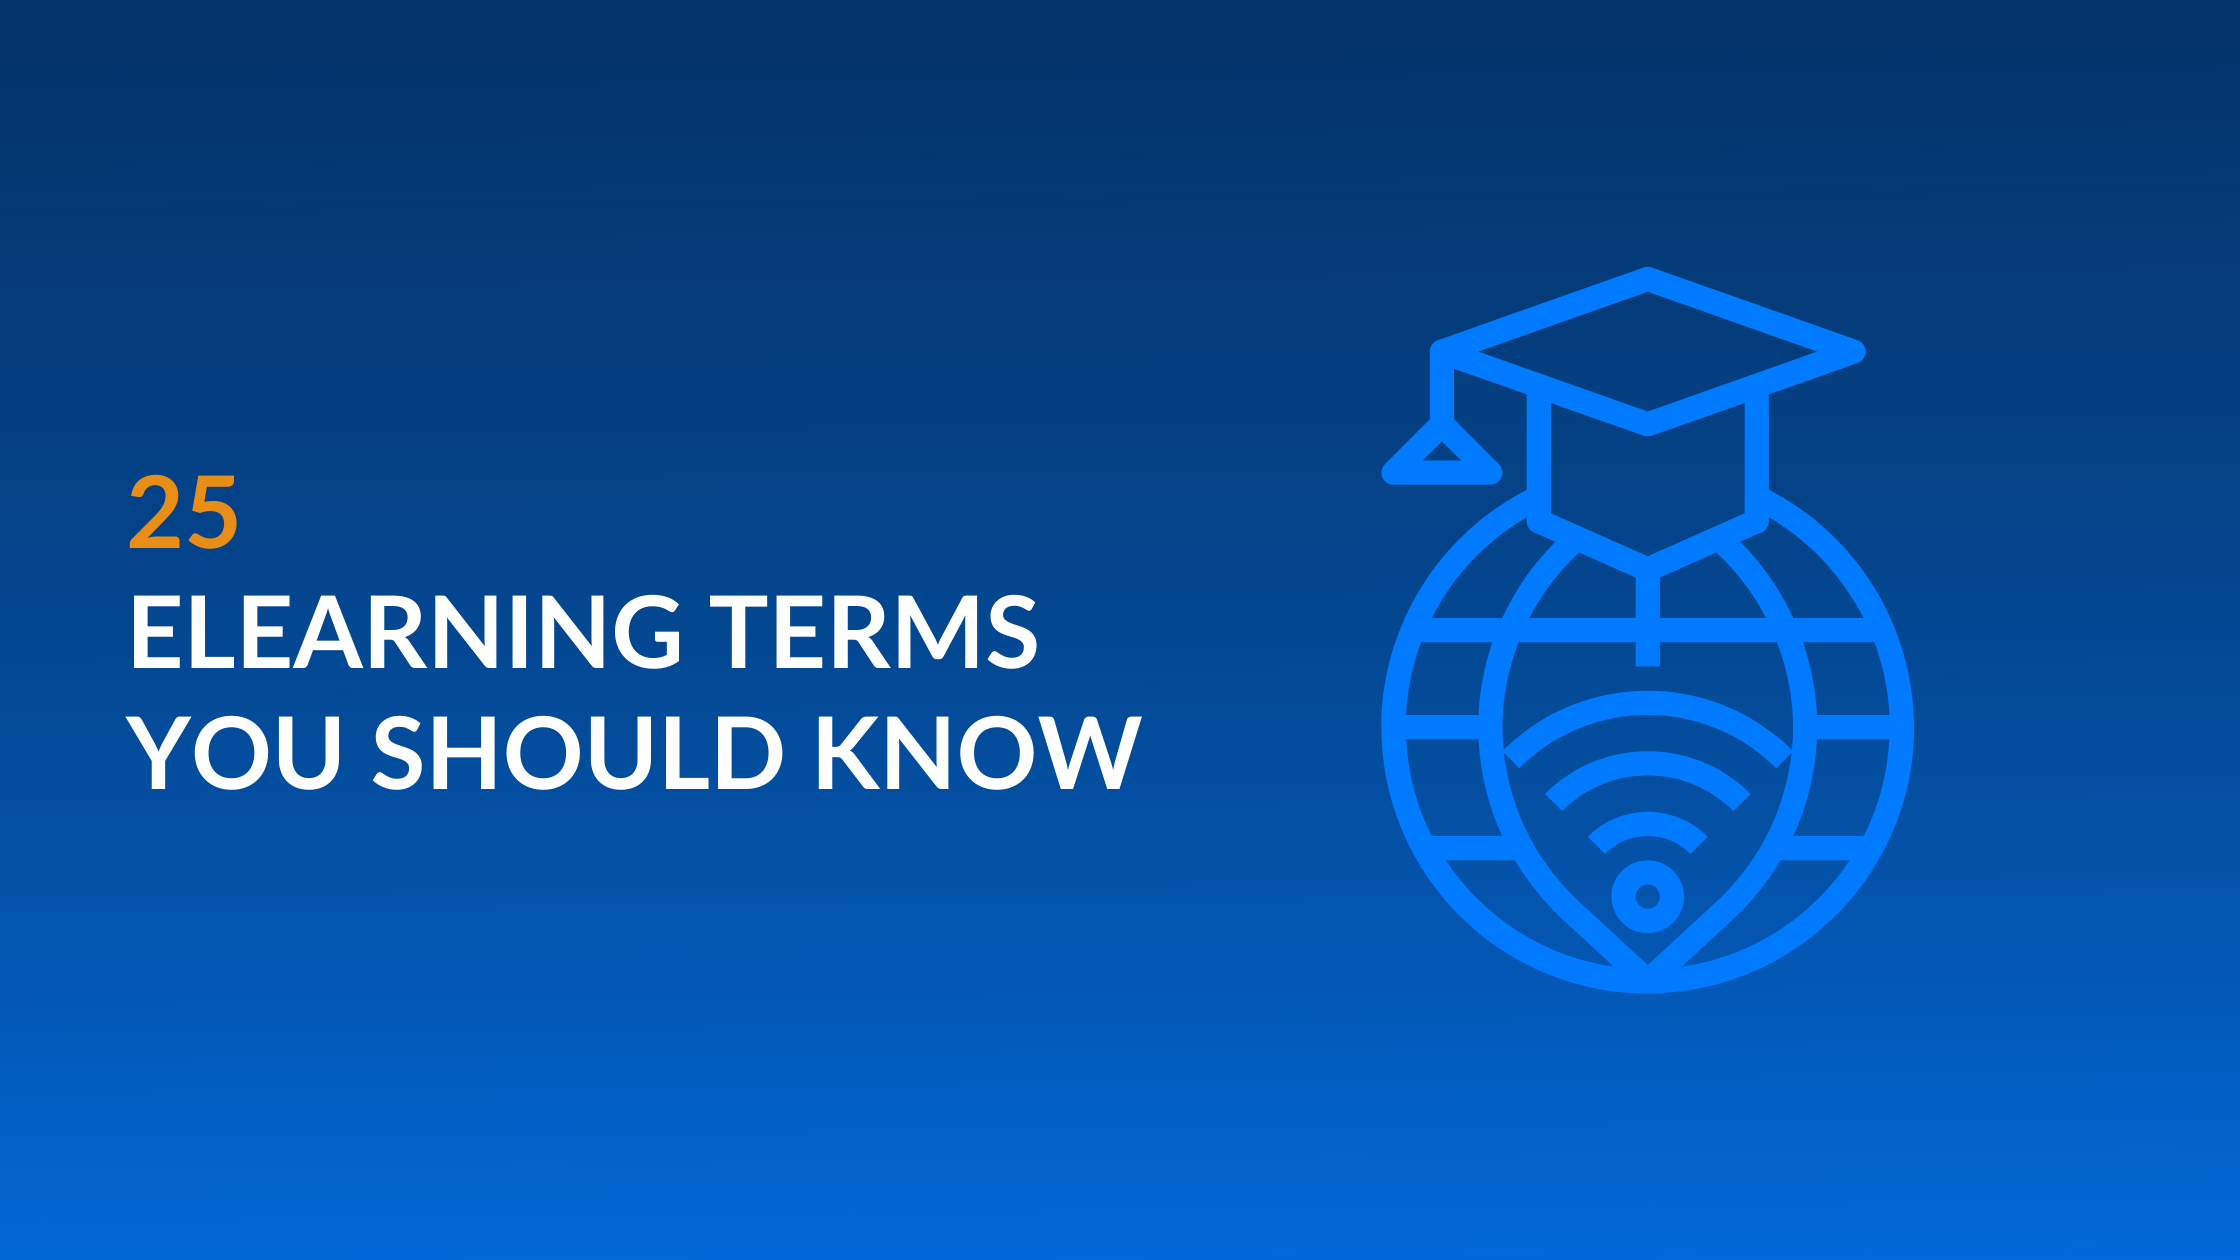 25 eLearning Terms You Should Know